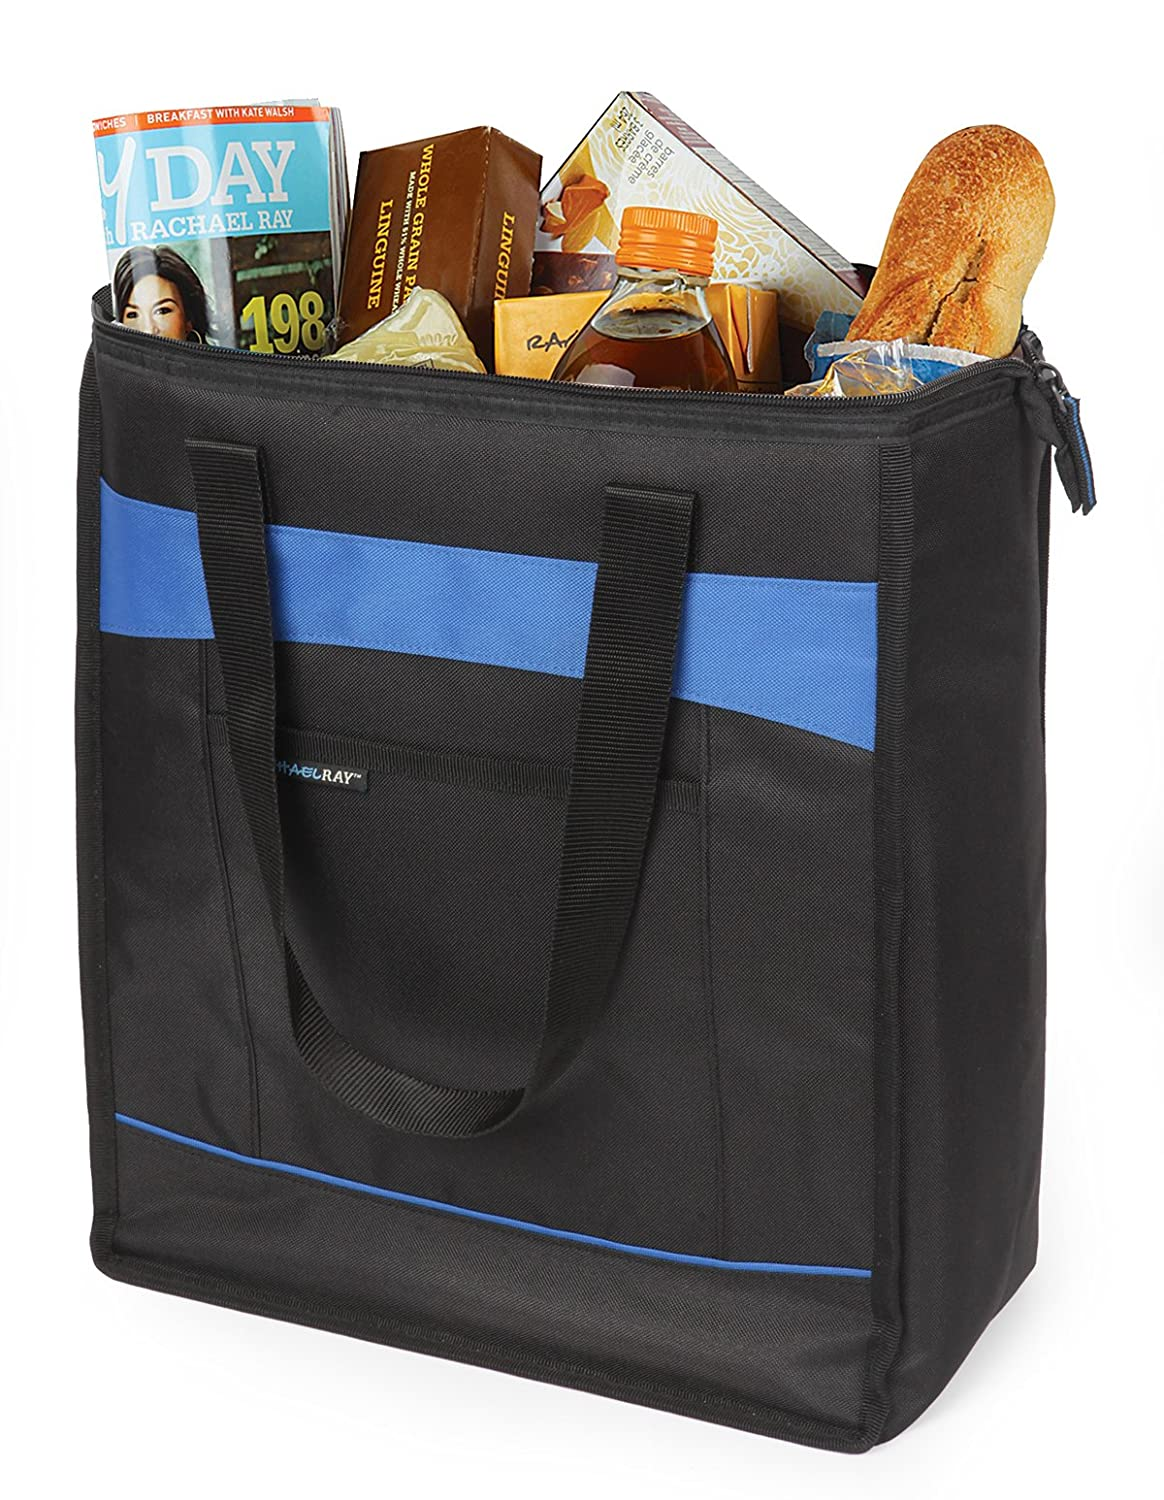 Insulated Bag for  Grocery Shopping //Entertaining Black with Blue Trim Rachael Ray ChillOut Thermal Tote Transport Hot and Cold Food